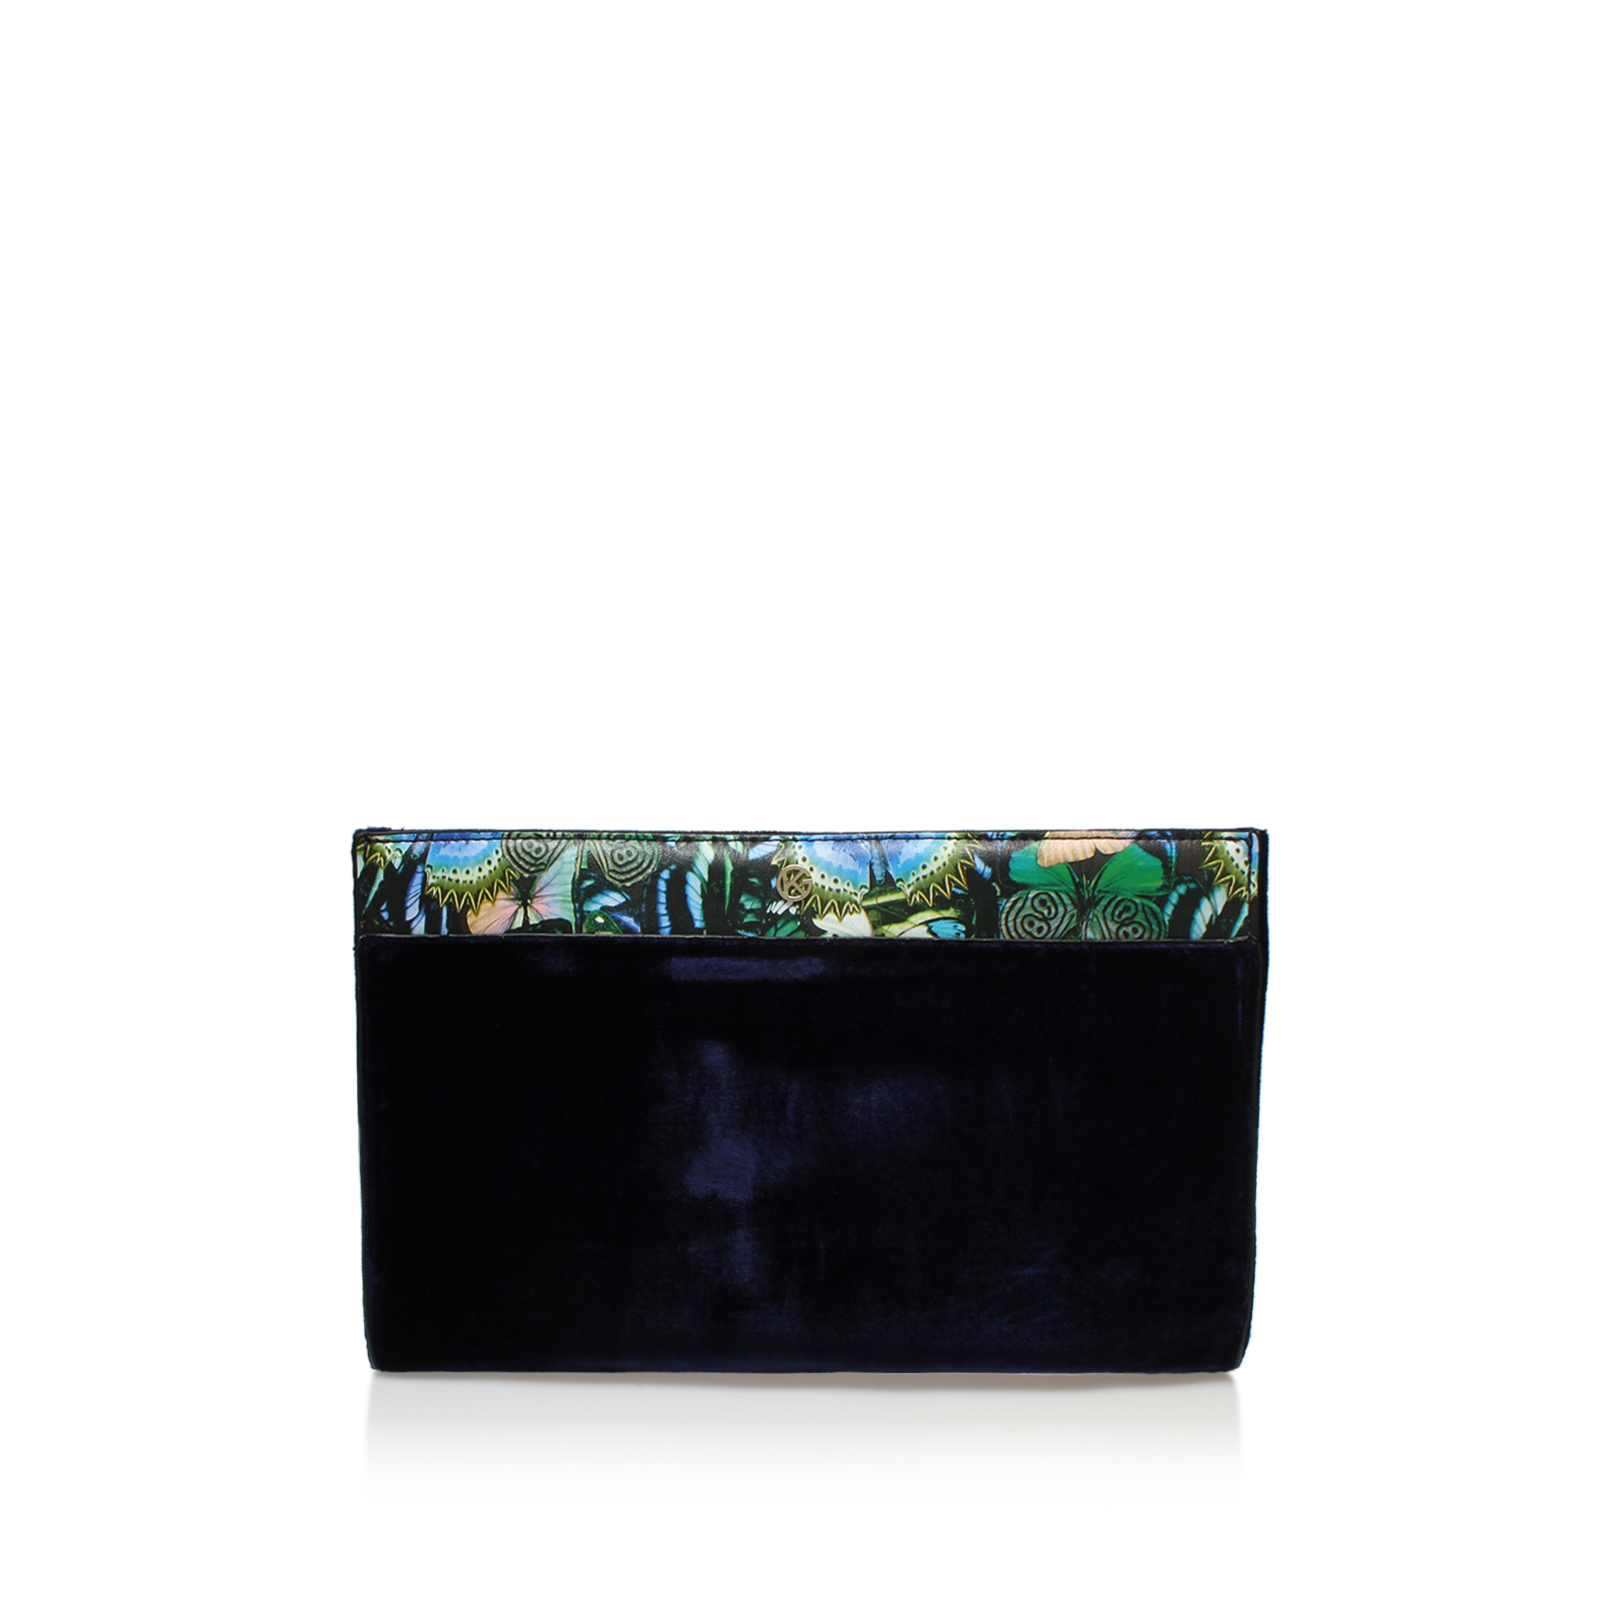 HOXTON BUTTERFLY CLUTCH